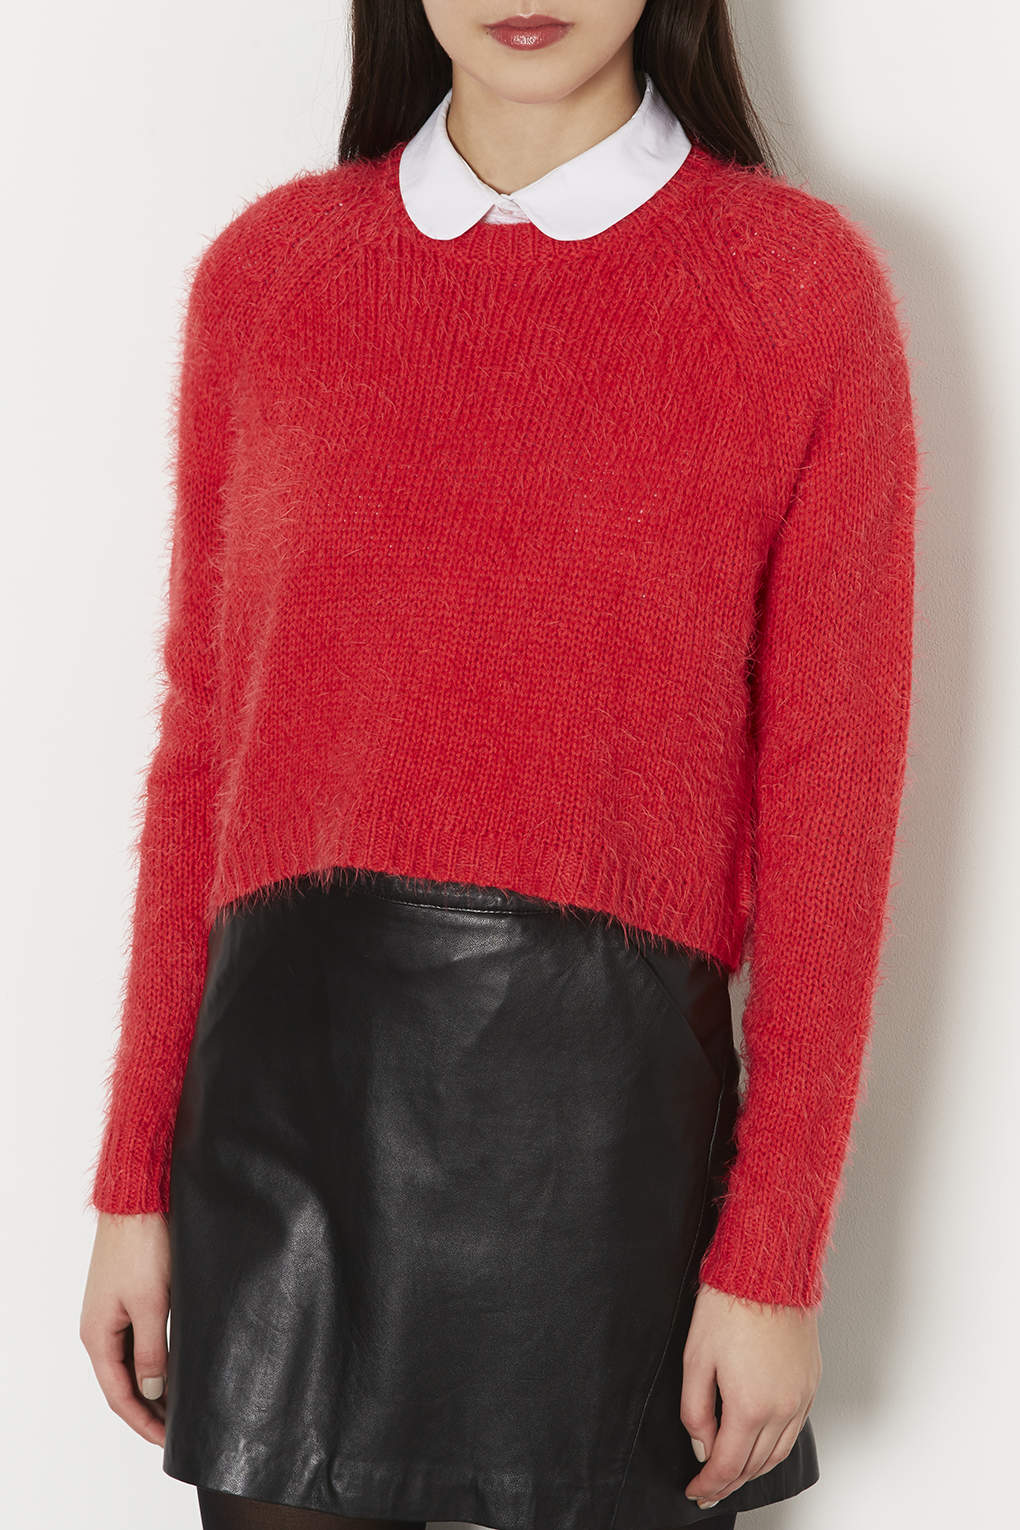 Topshop Knitted Fluffy Crew Jumper in Red | Lyst